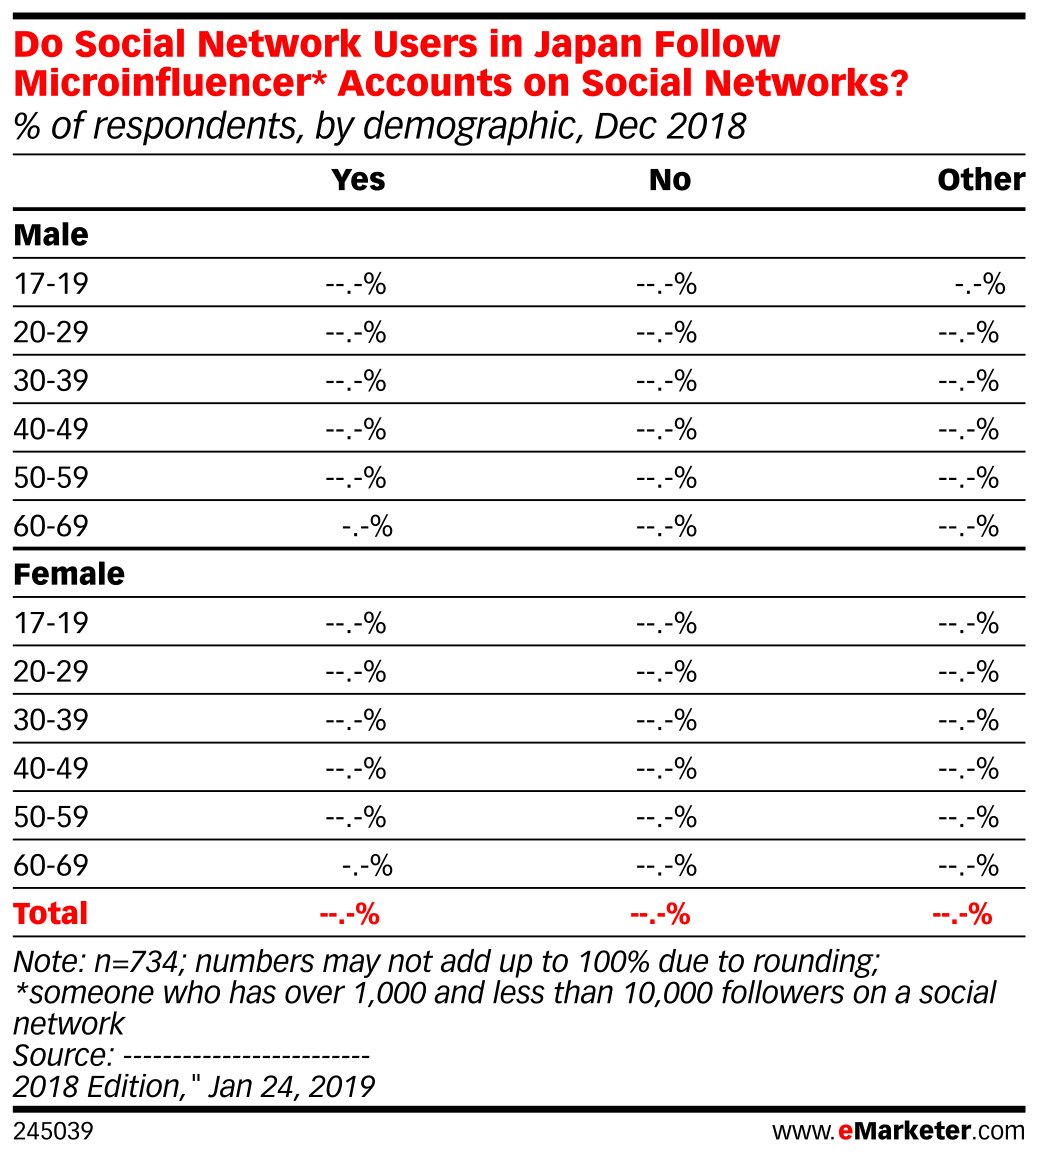 Do Social Network Users in Japan Follow Microinfluencer* Accounts on Social Networks? (% of respondents, by demographic, Dec 2018)